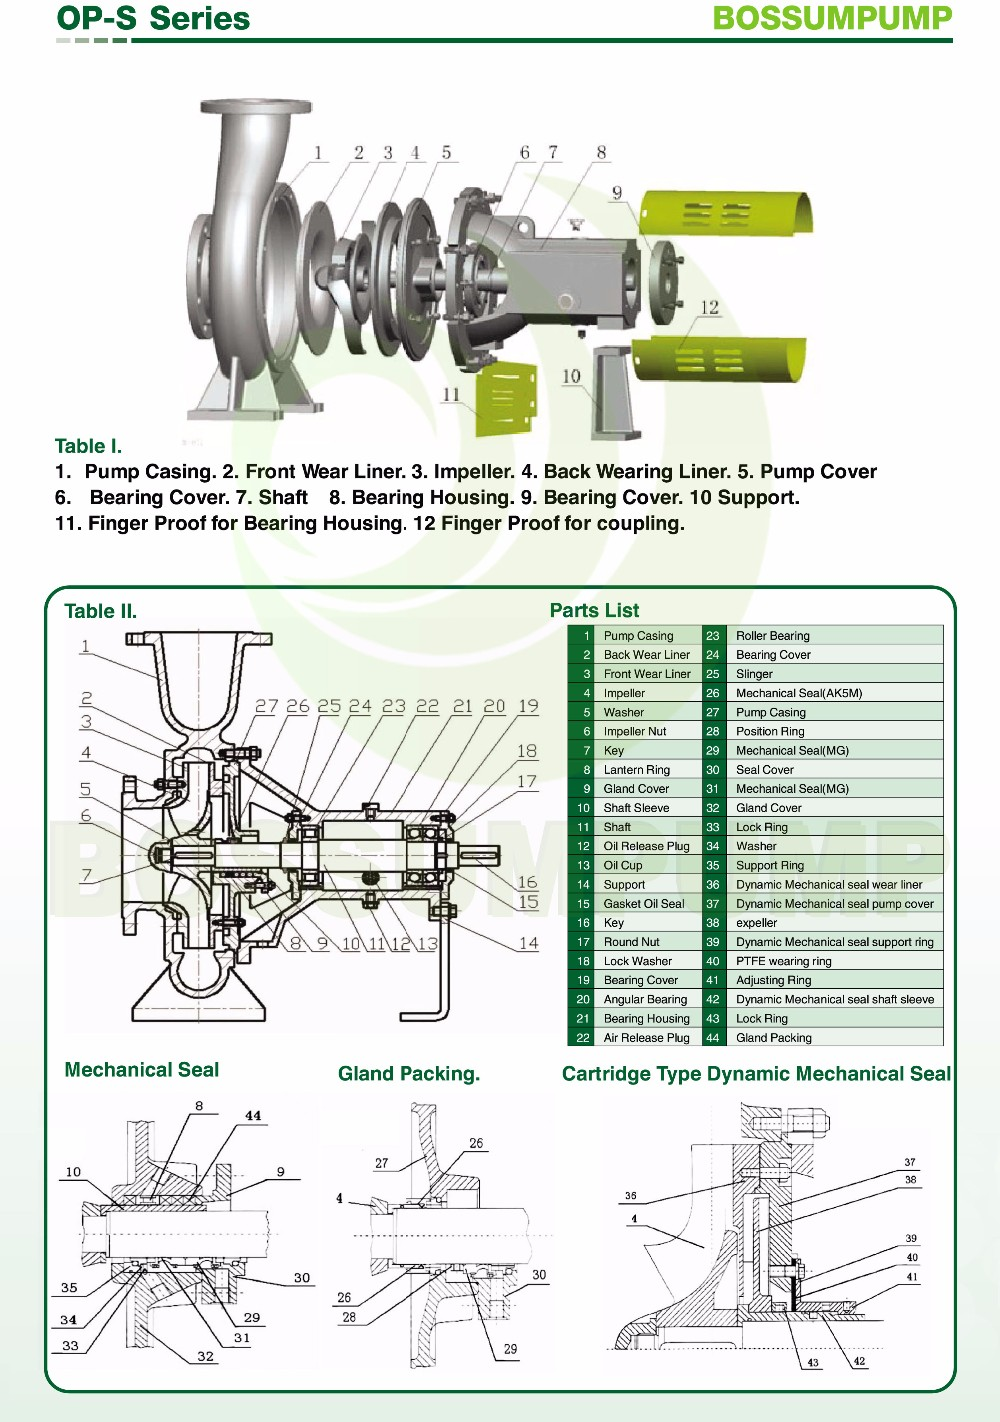 hight resolution of op s industrial process pump brand bossum made in italy